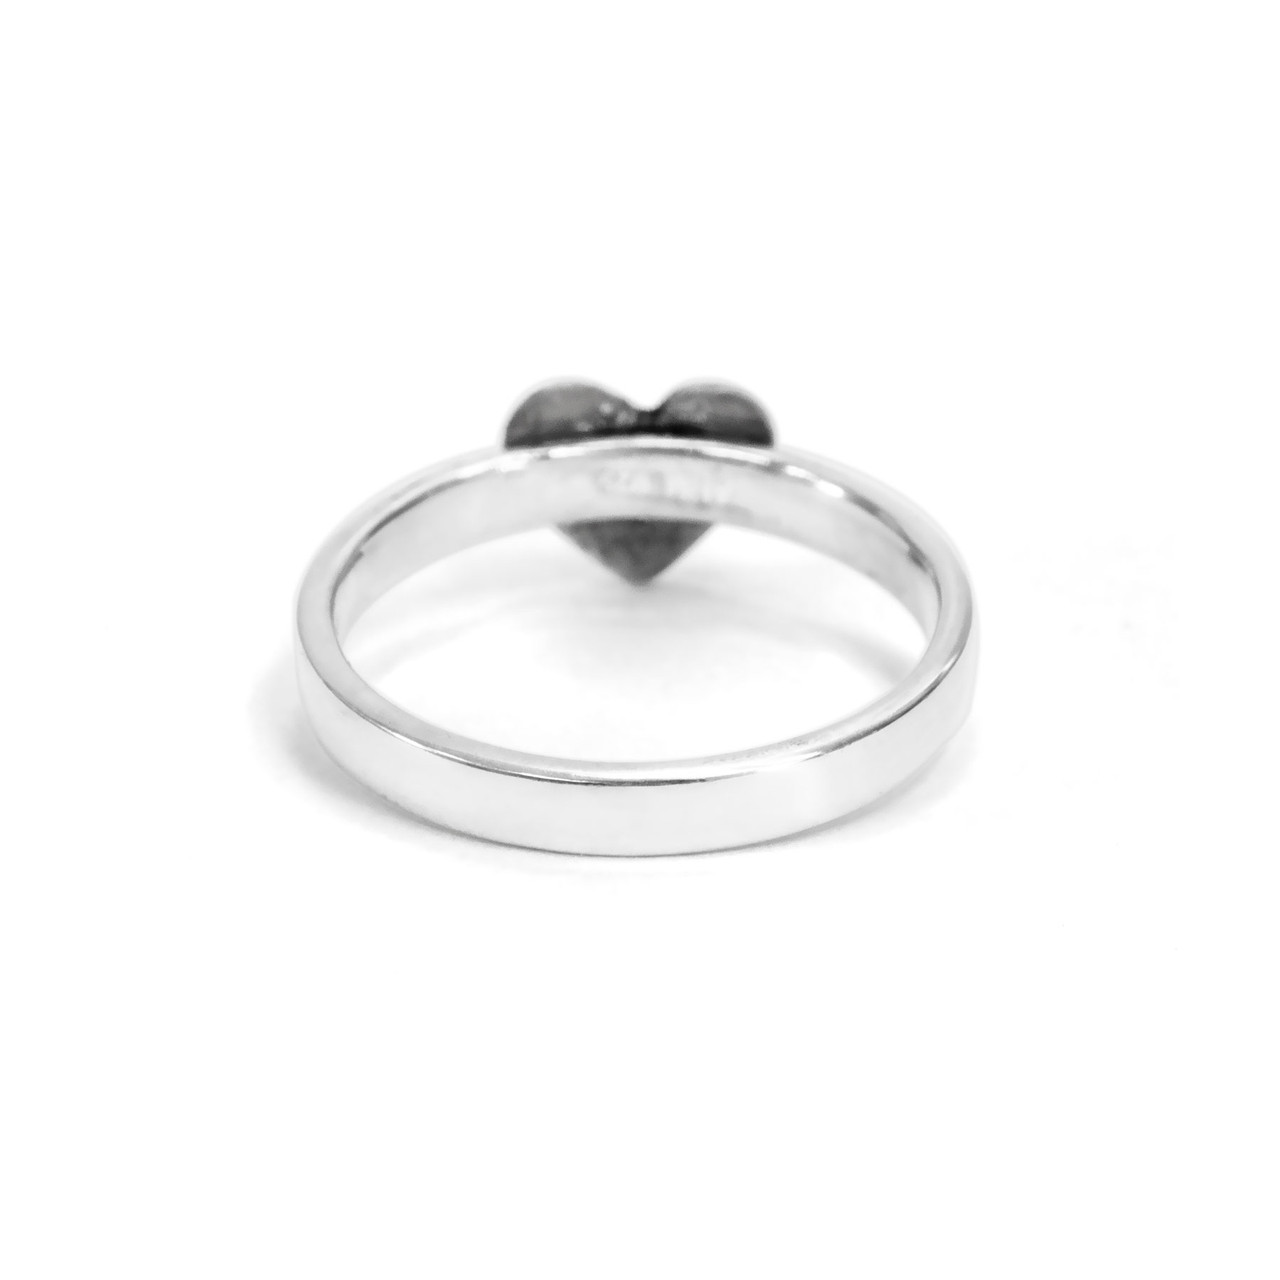 custom heart shaped fingerprint jewelry ring in sterling silver, shown from the back, on white